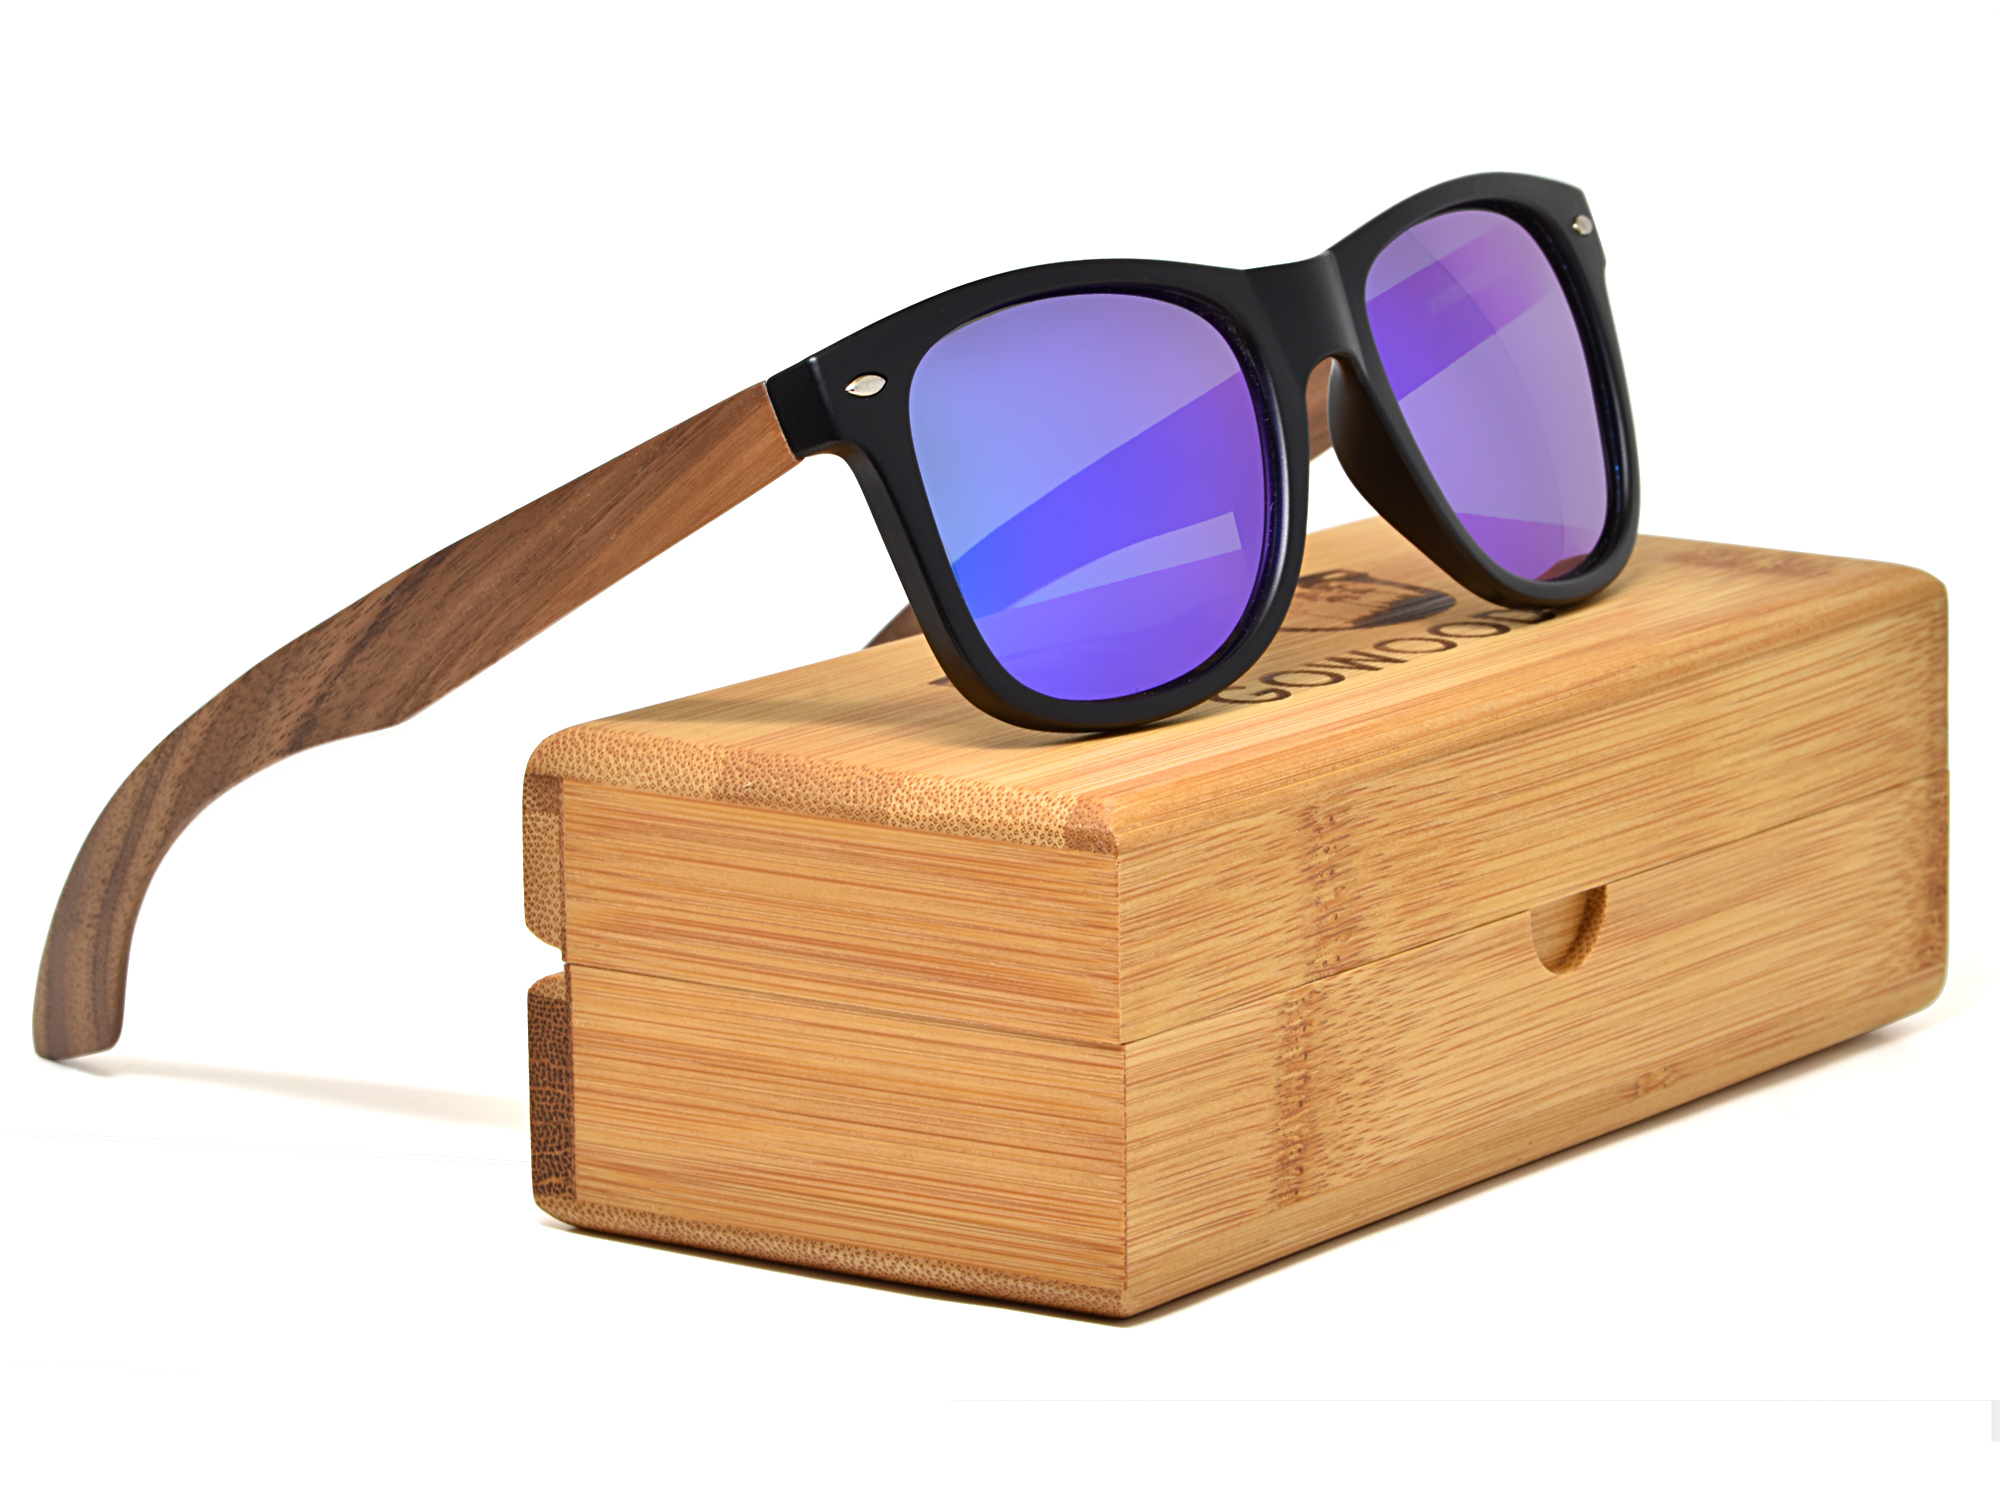 Walnut wood sunglasses blue mirrored lenses box